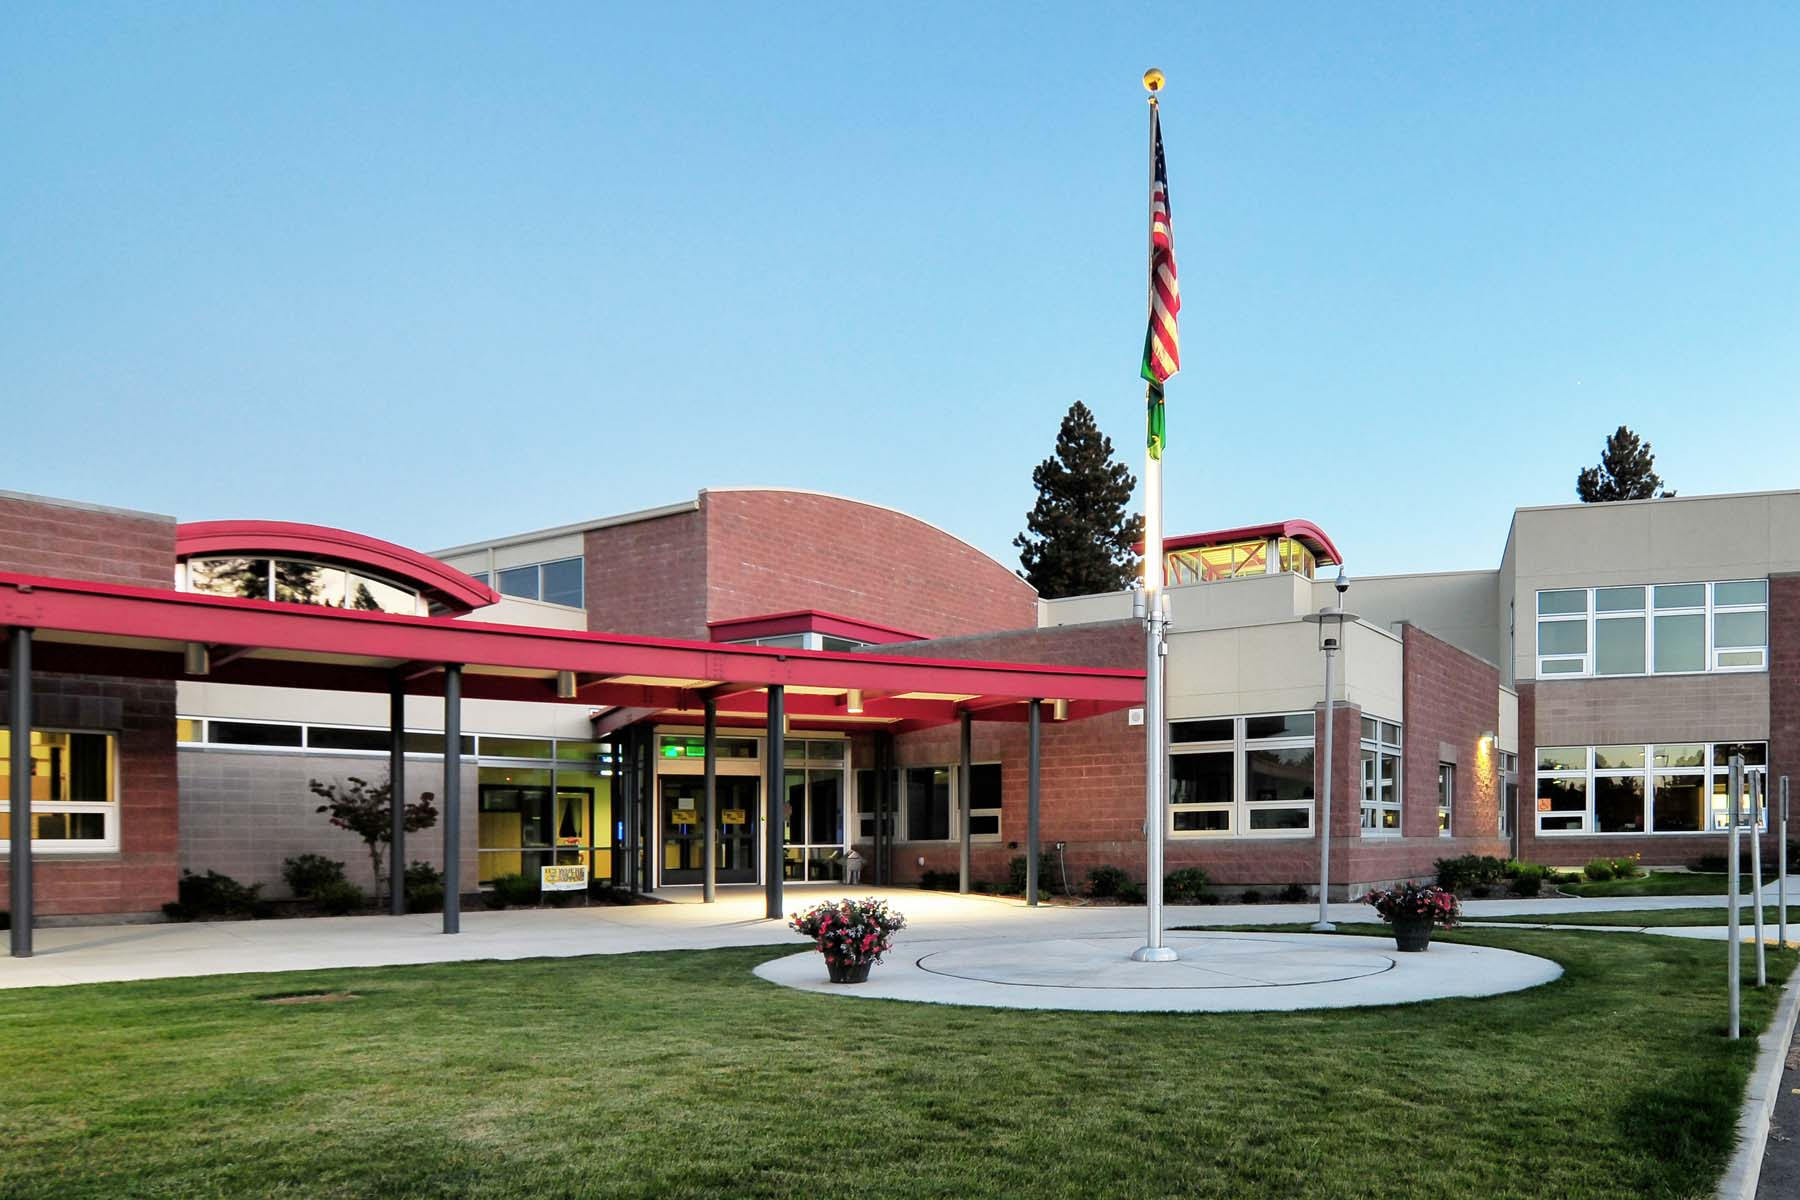 Lincoln Heights Elementary School